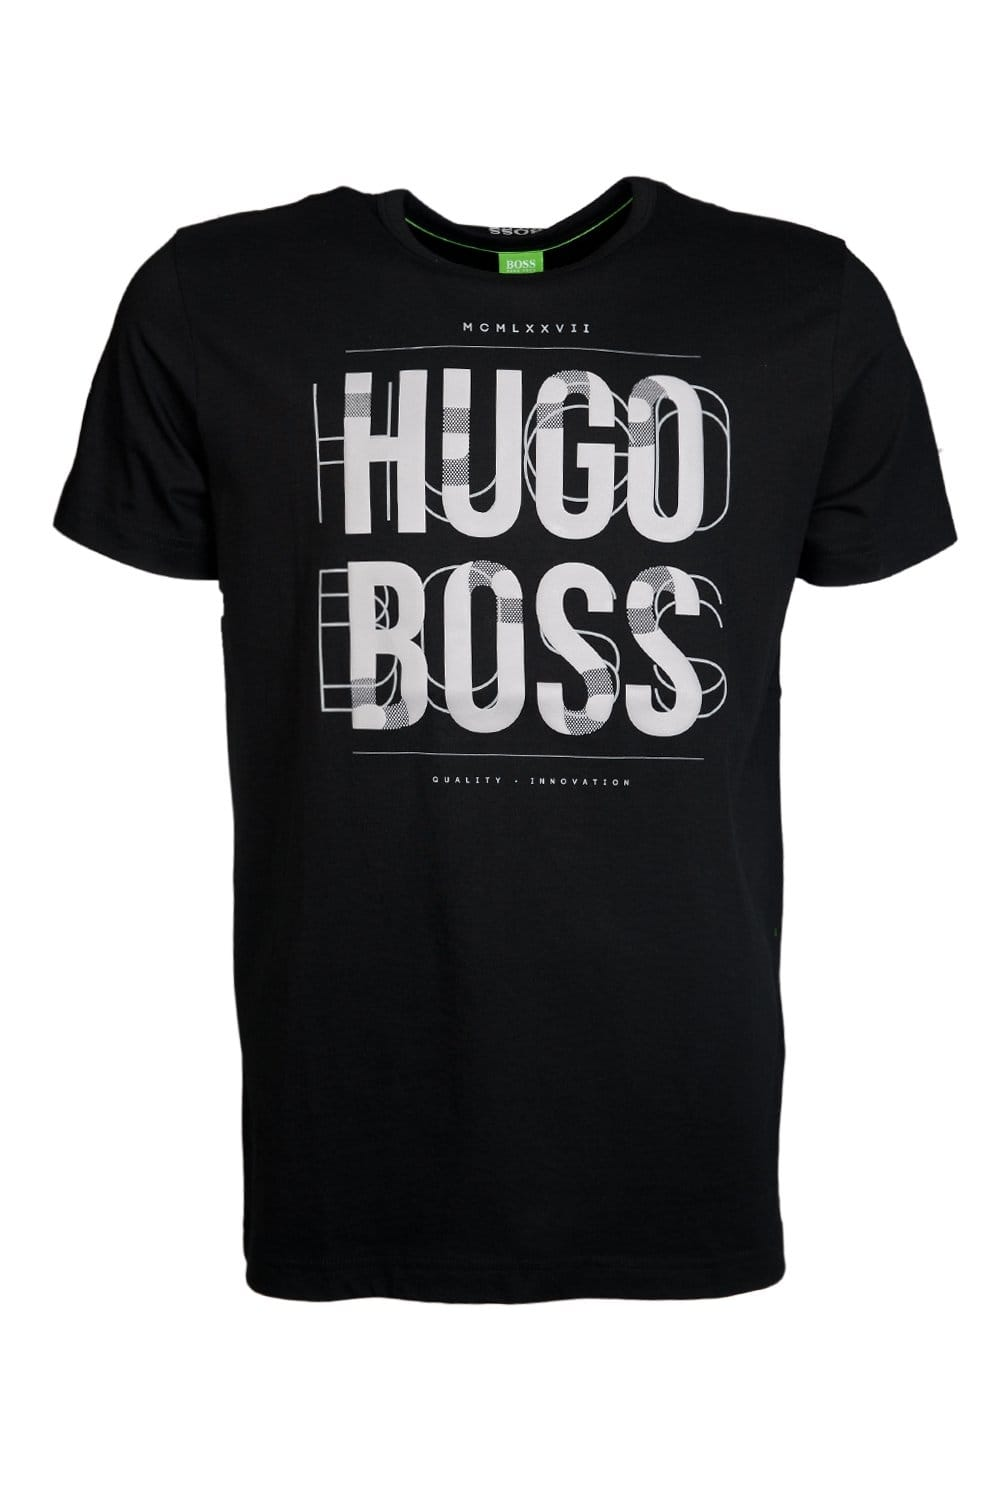 Black designer t shirts artee shirt for Hugo boss t shirts online